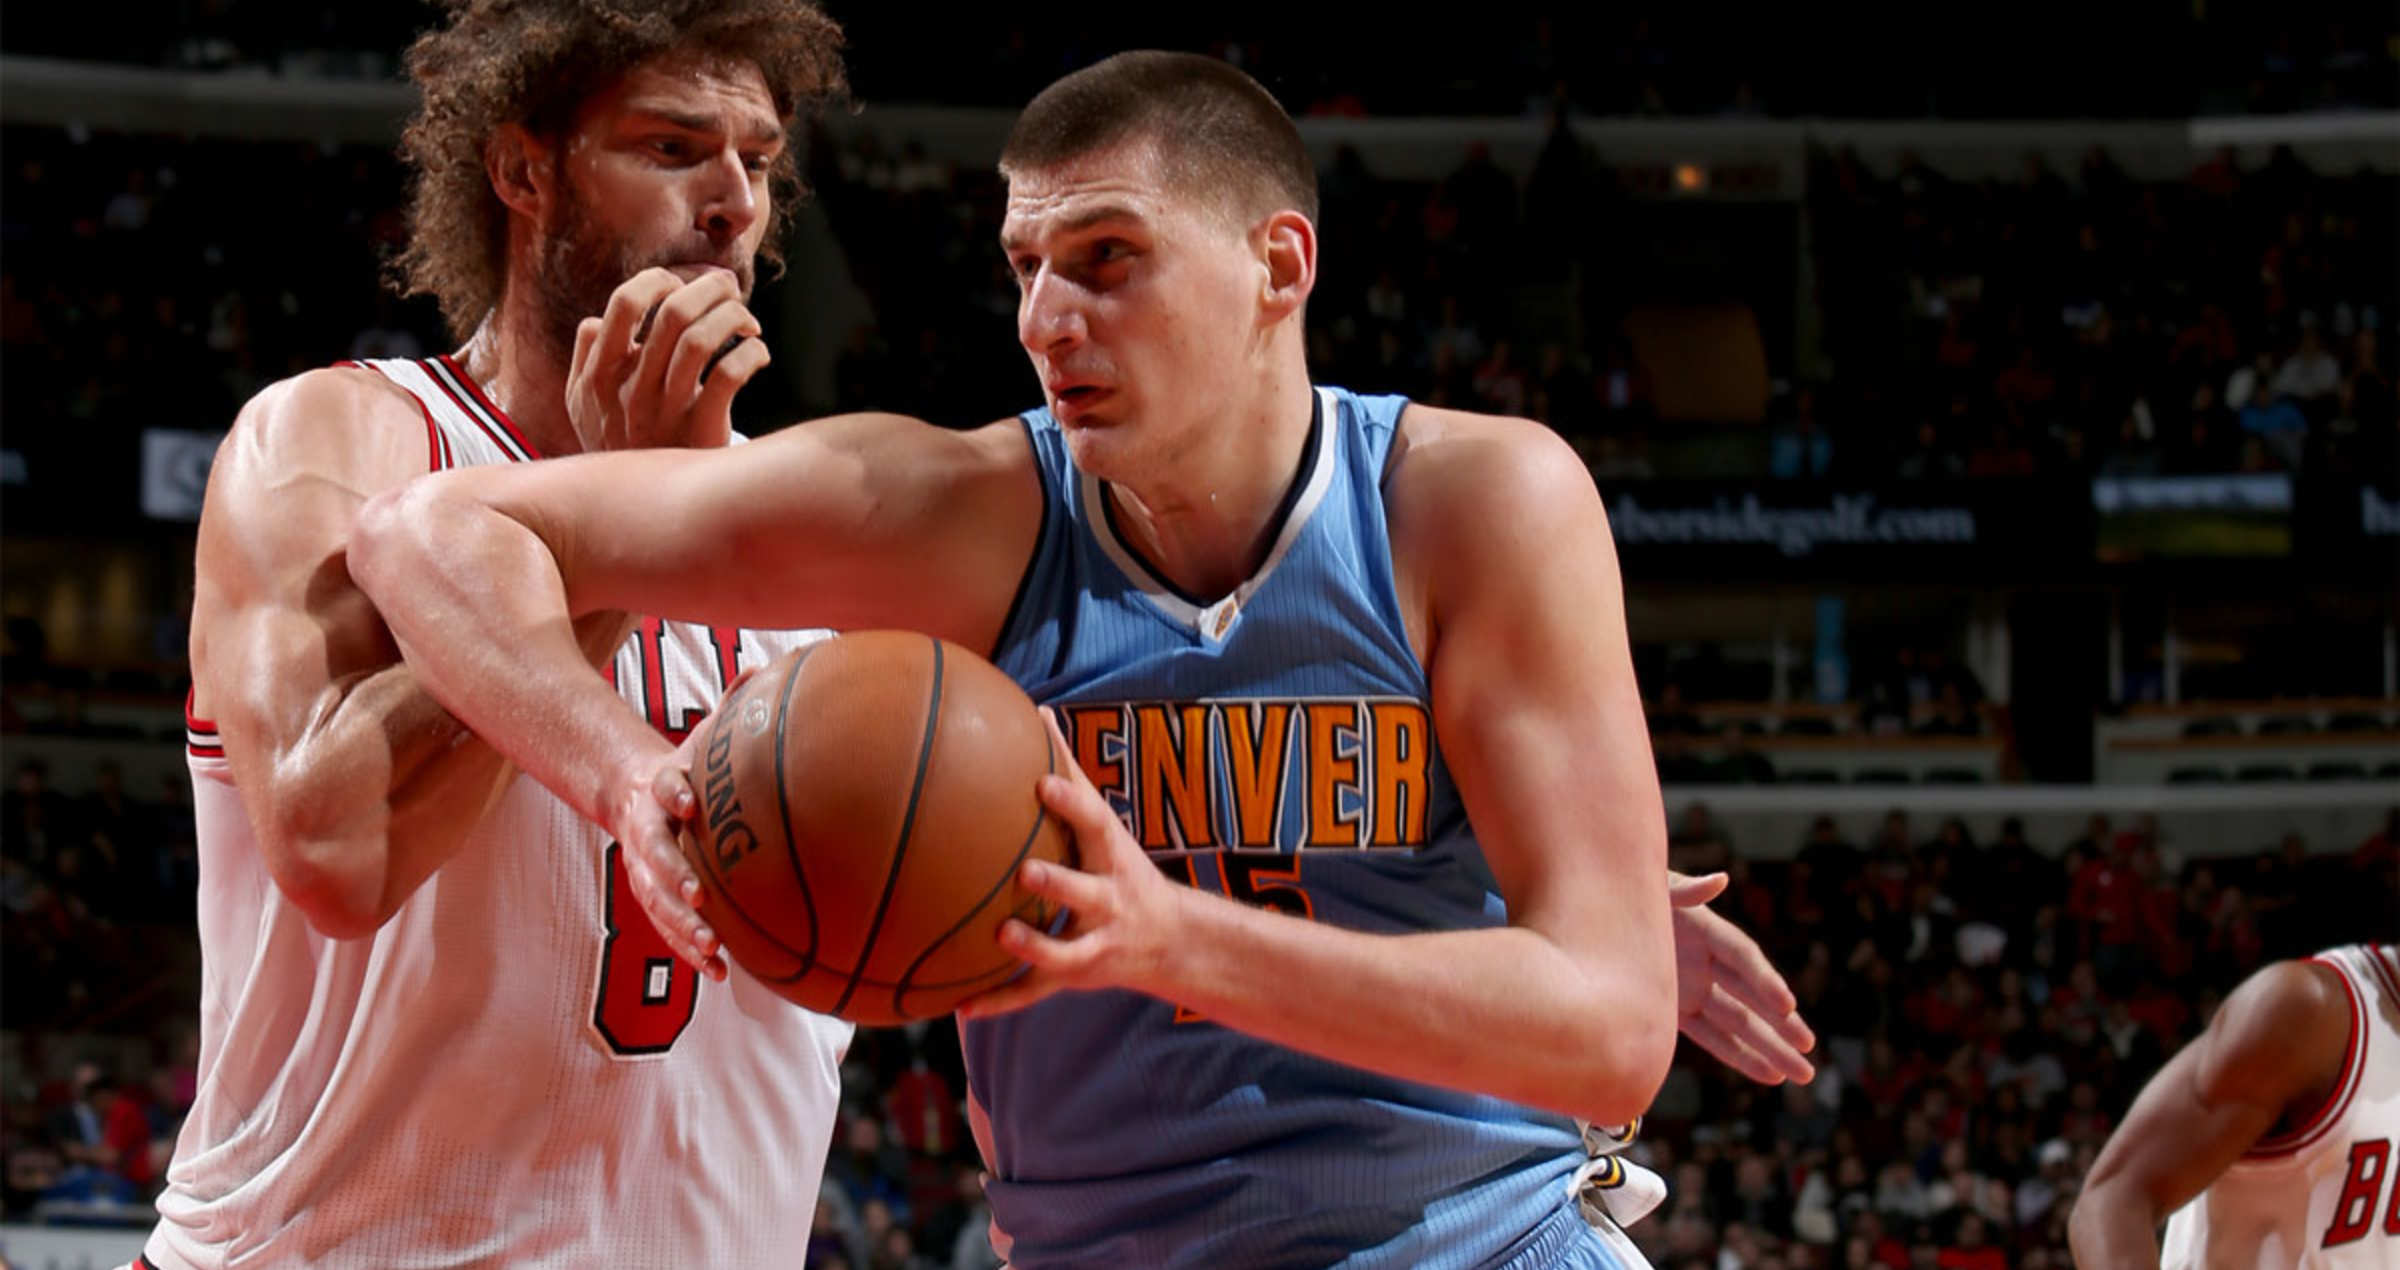 Nikola Jokic #15 of the Denver Nuggets goes to the basket against the Chicago Bulls on February 28, 2017 at the United Center in Chicago, Illinois.